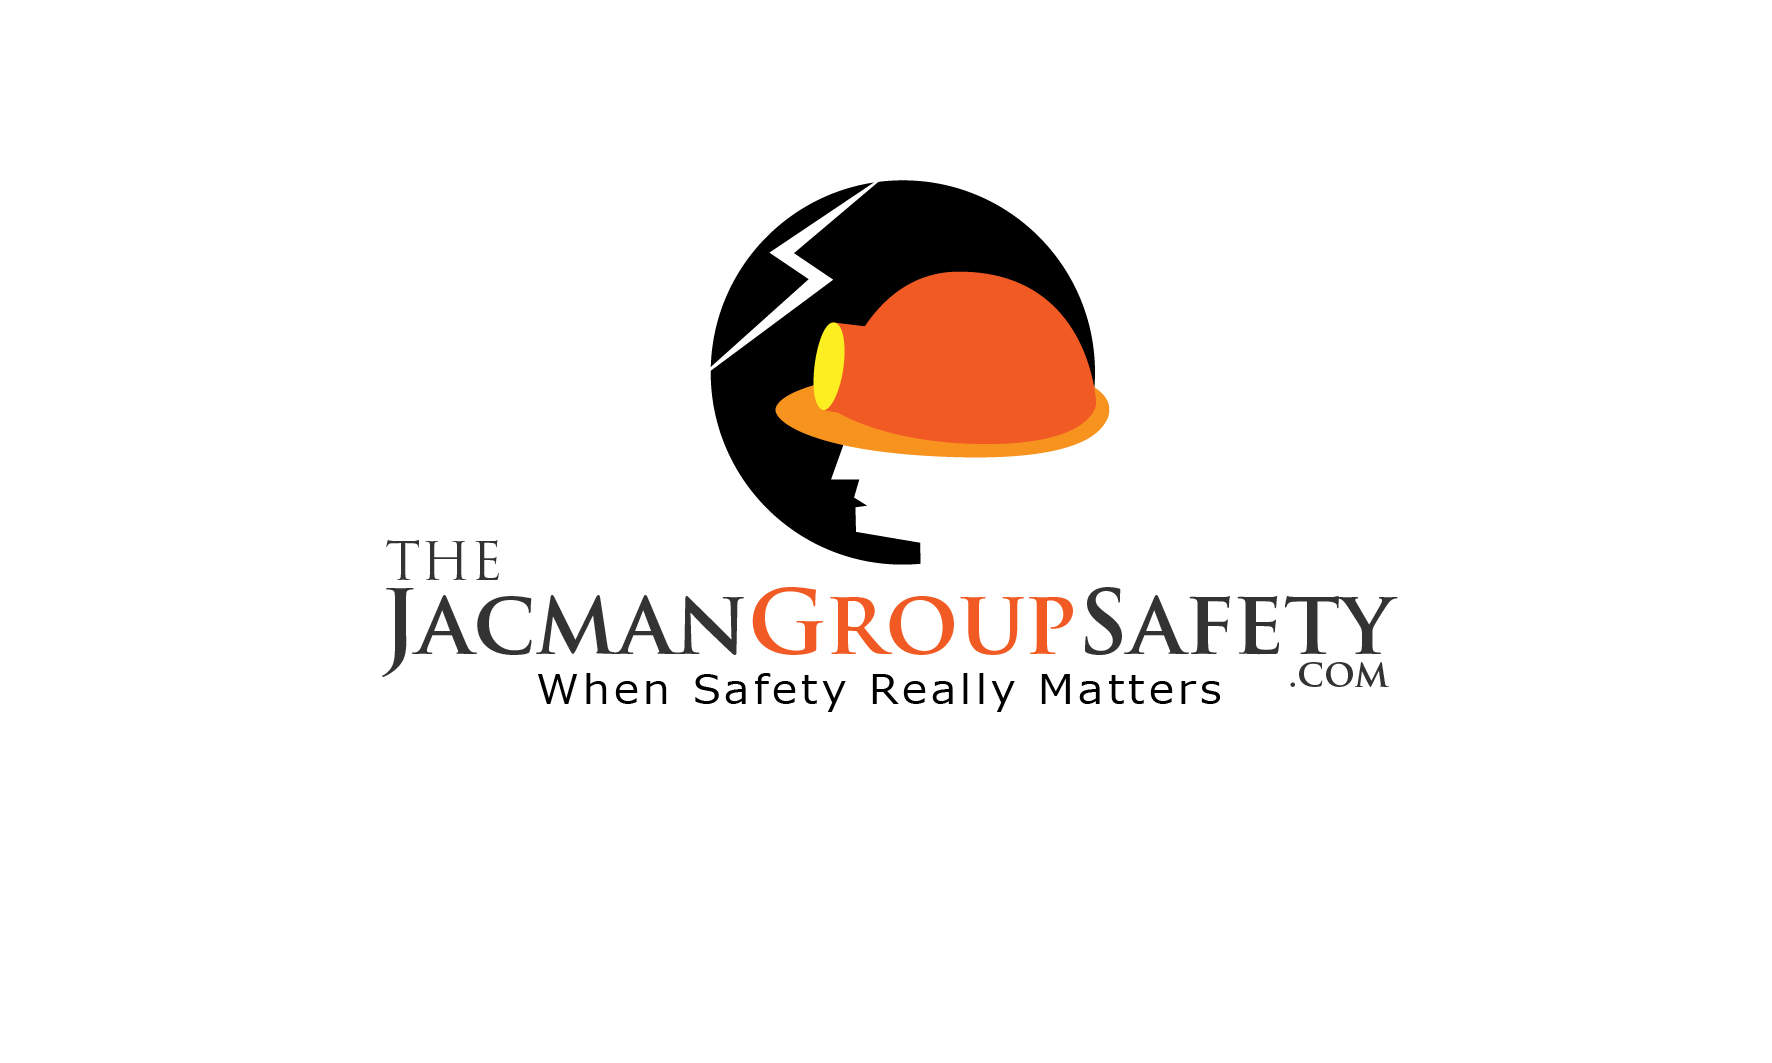 Logo Design by 3draw - Entry No. 71 in the Logo Design Contest The Jacman Group Logo Design.